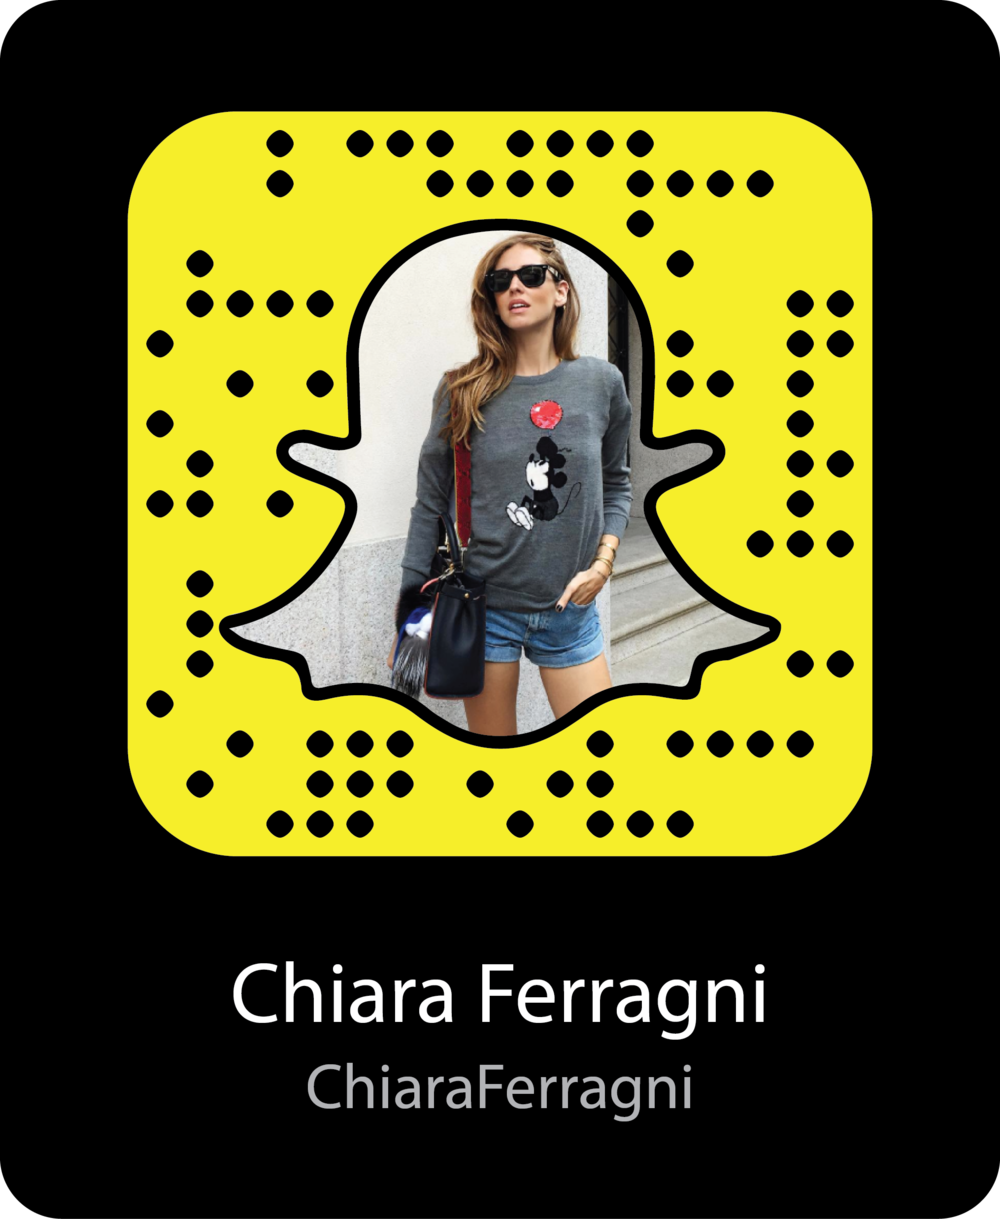 ChiaraFerragni-Beauty-Bloggers-snapchat-snapcode.png